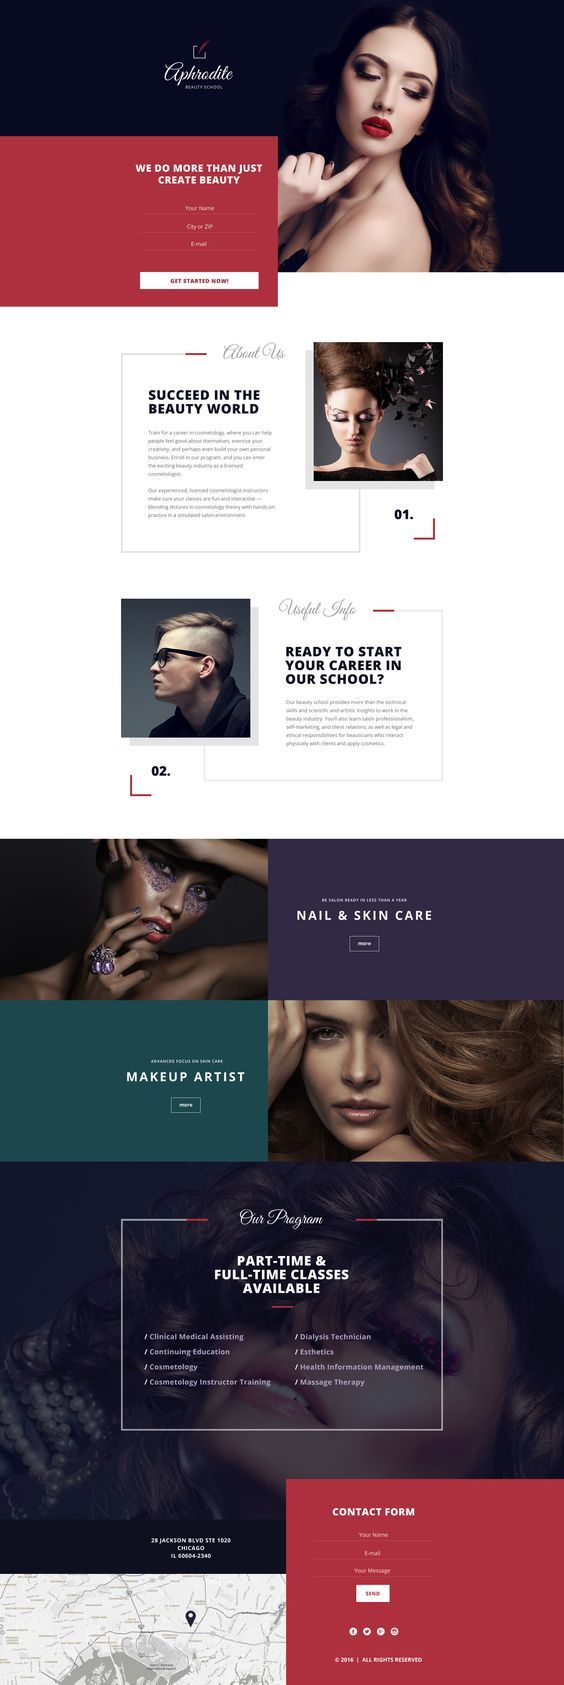 Aphrodite Beauty School Web Design | Fivestar Branding – Design and Branding Agency & Inspiration Gallery